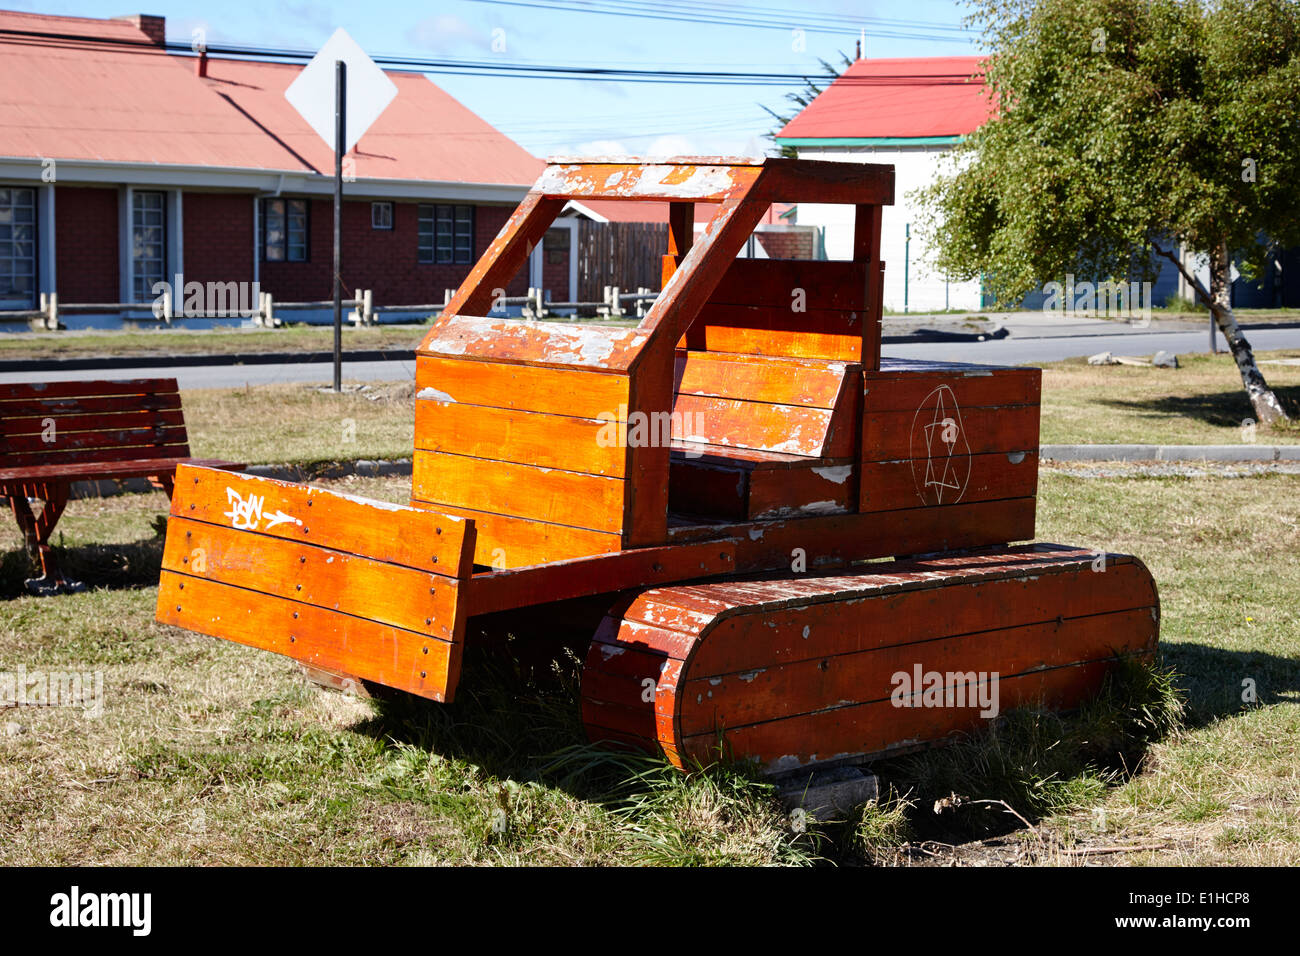 wooden bulldozer in a childrens play area with grafitti star of david scraped onto the side Punta Arenas Chile - Stock Image